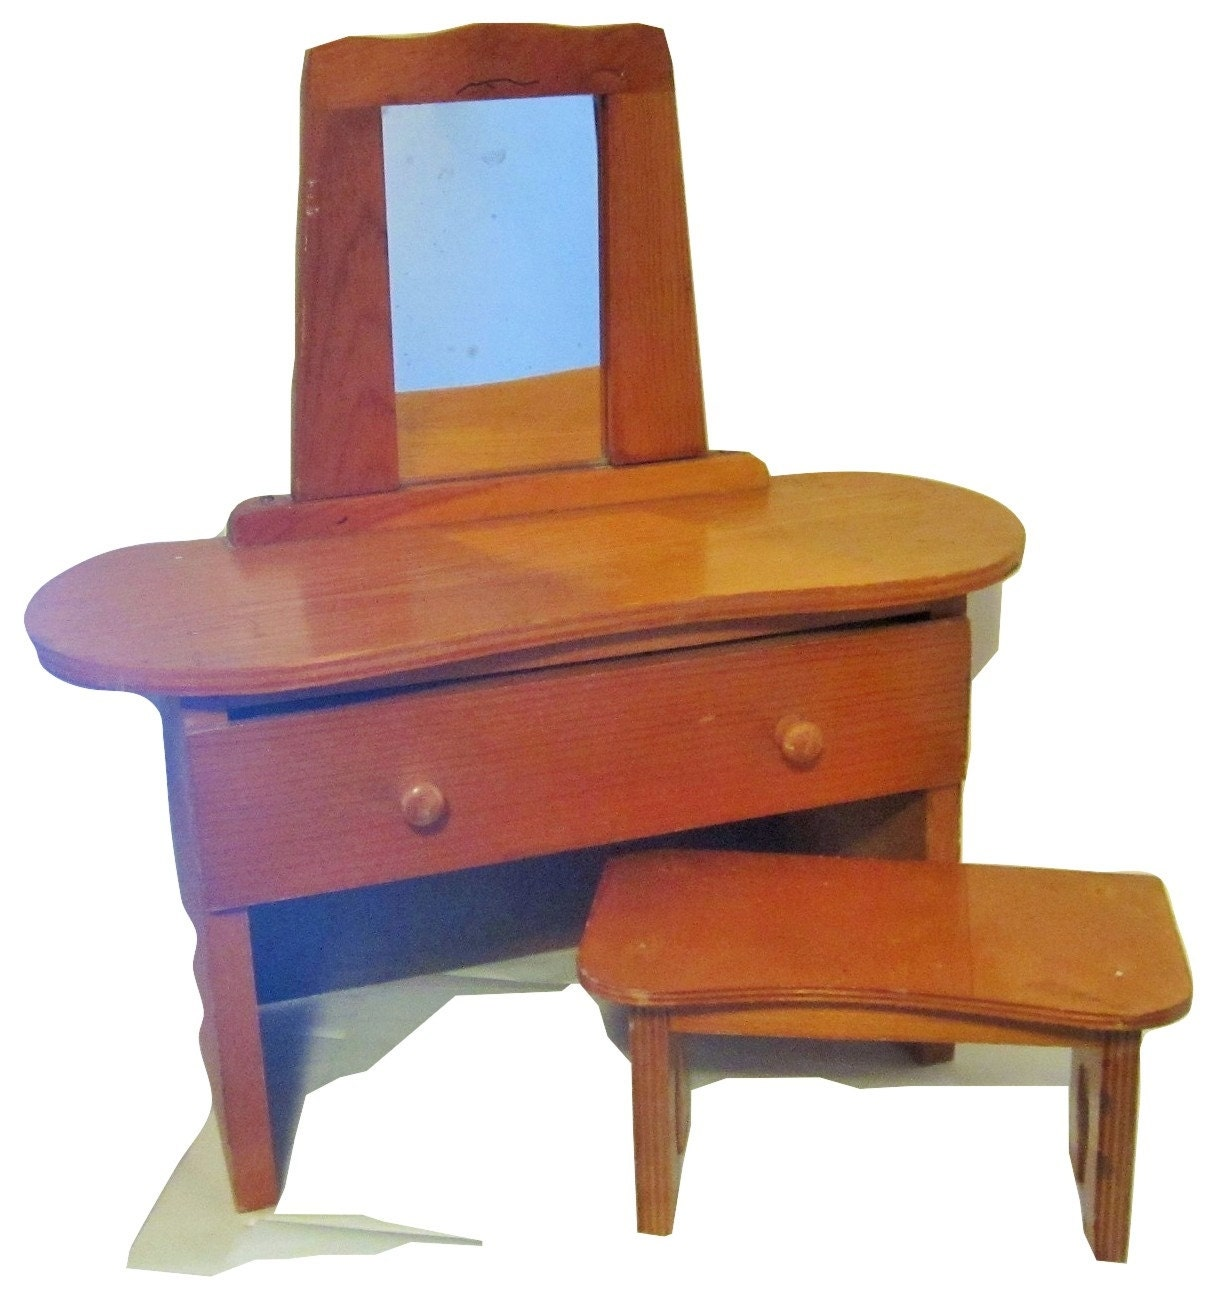 Superb img of Vintage Toy Doll Wood Vanity Dresser With Stool by mstookesmuzes with #1E66AD color and 1215x1295 pixels